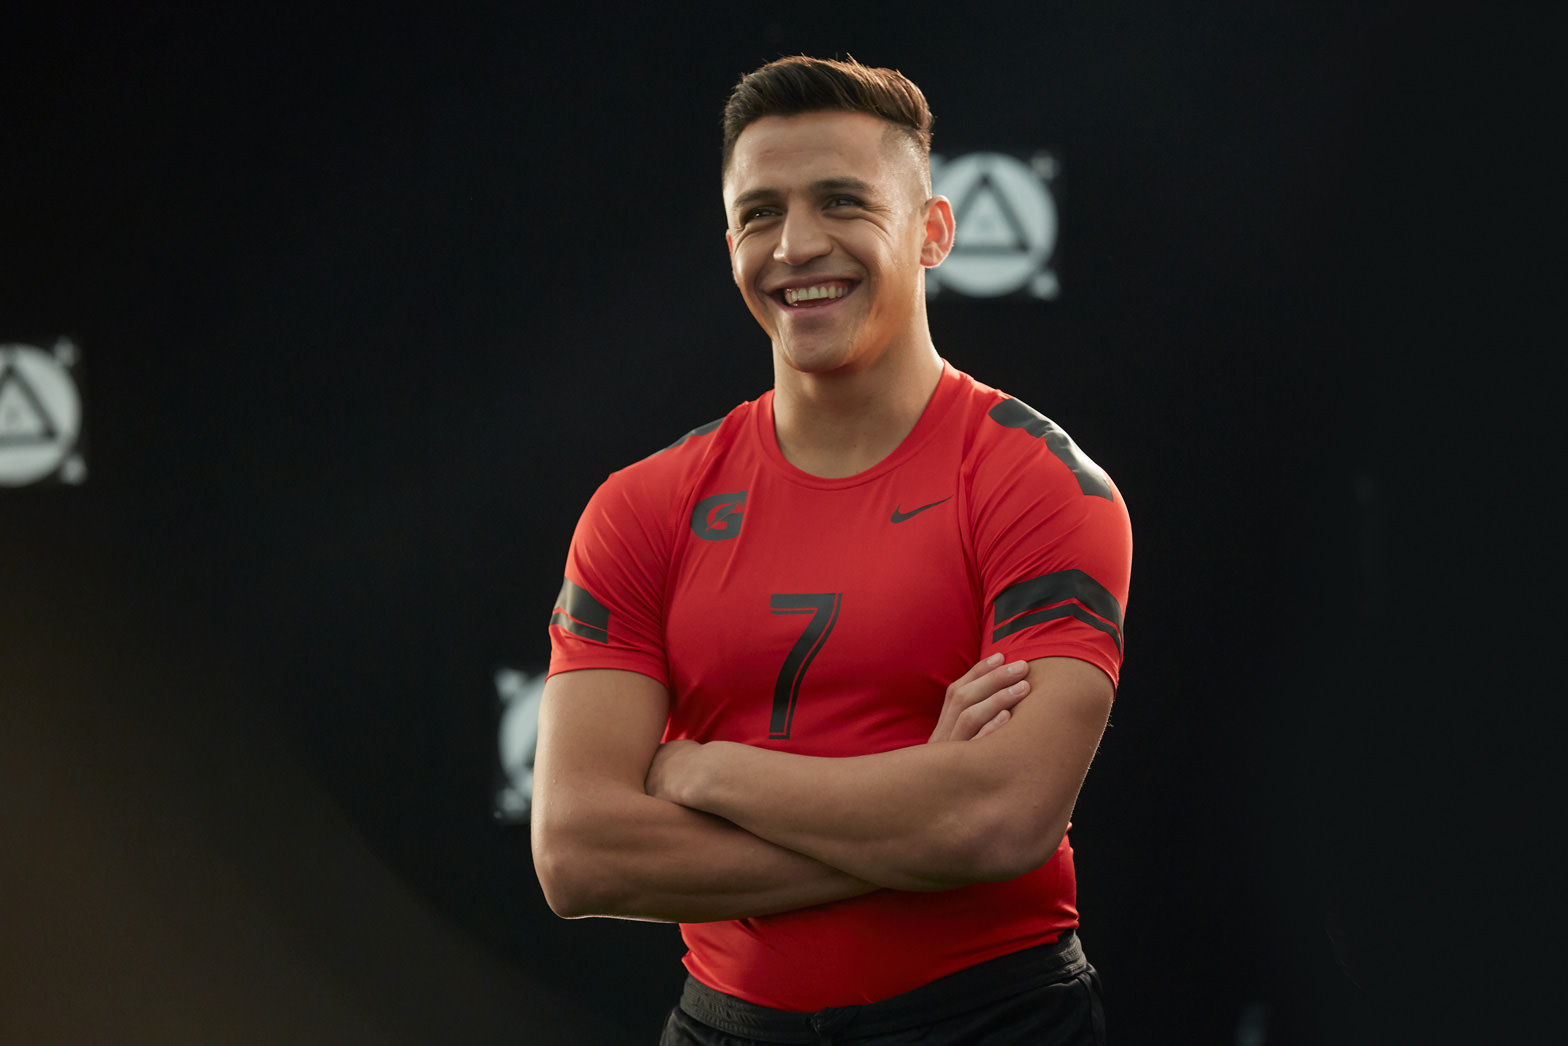 384-BTS-alexis-sanchez-laura-radford-stills-photographer-tv-commercial-advert.jpg